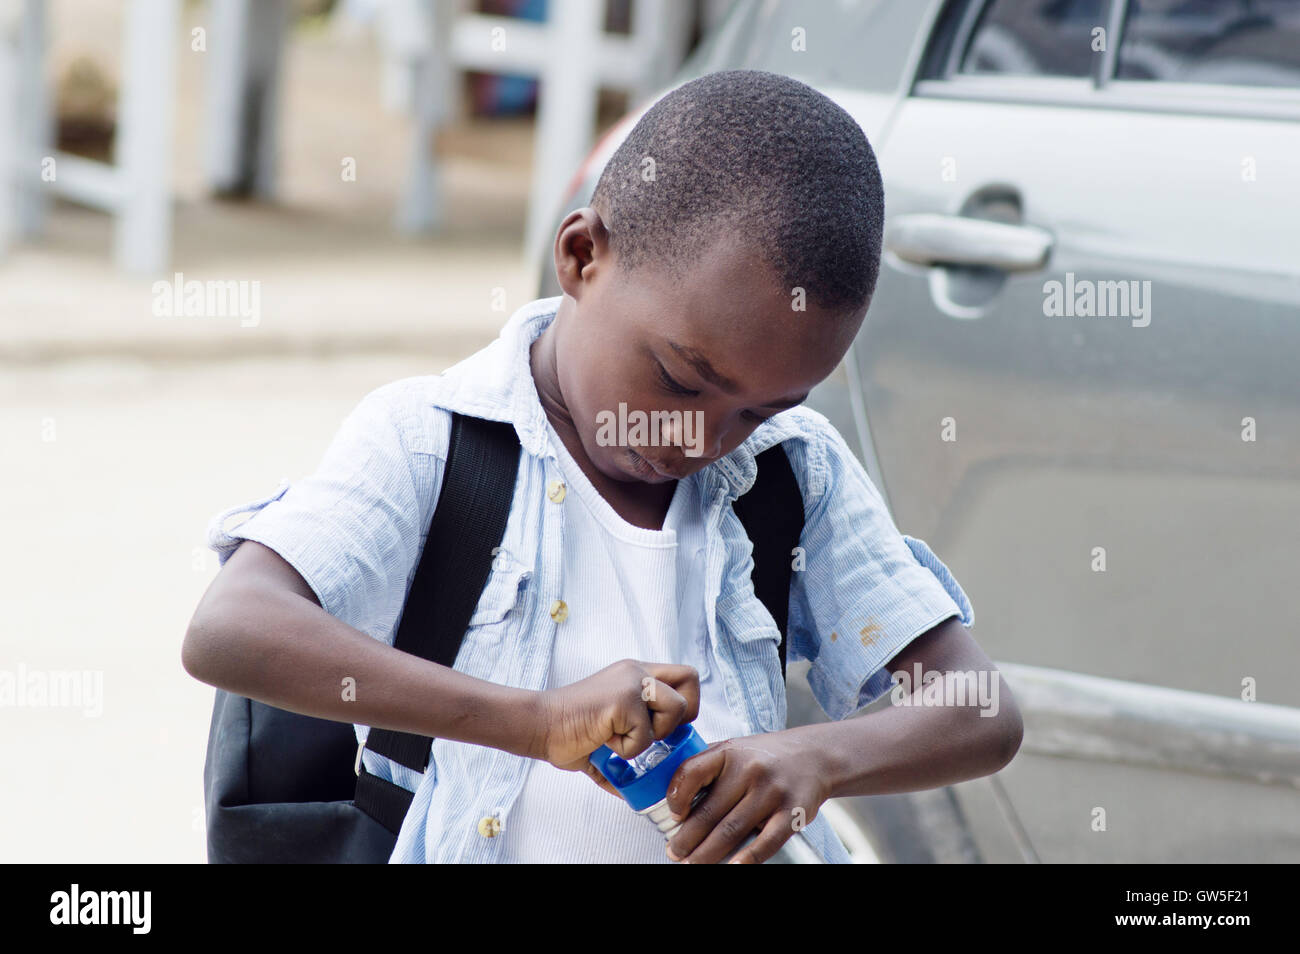 child opens his bottle containing water because he is thirsty Stock Photo